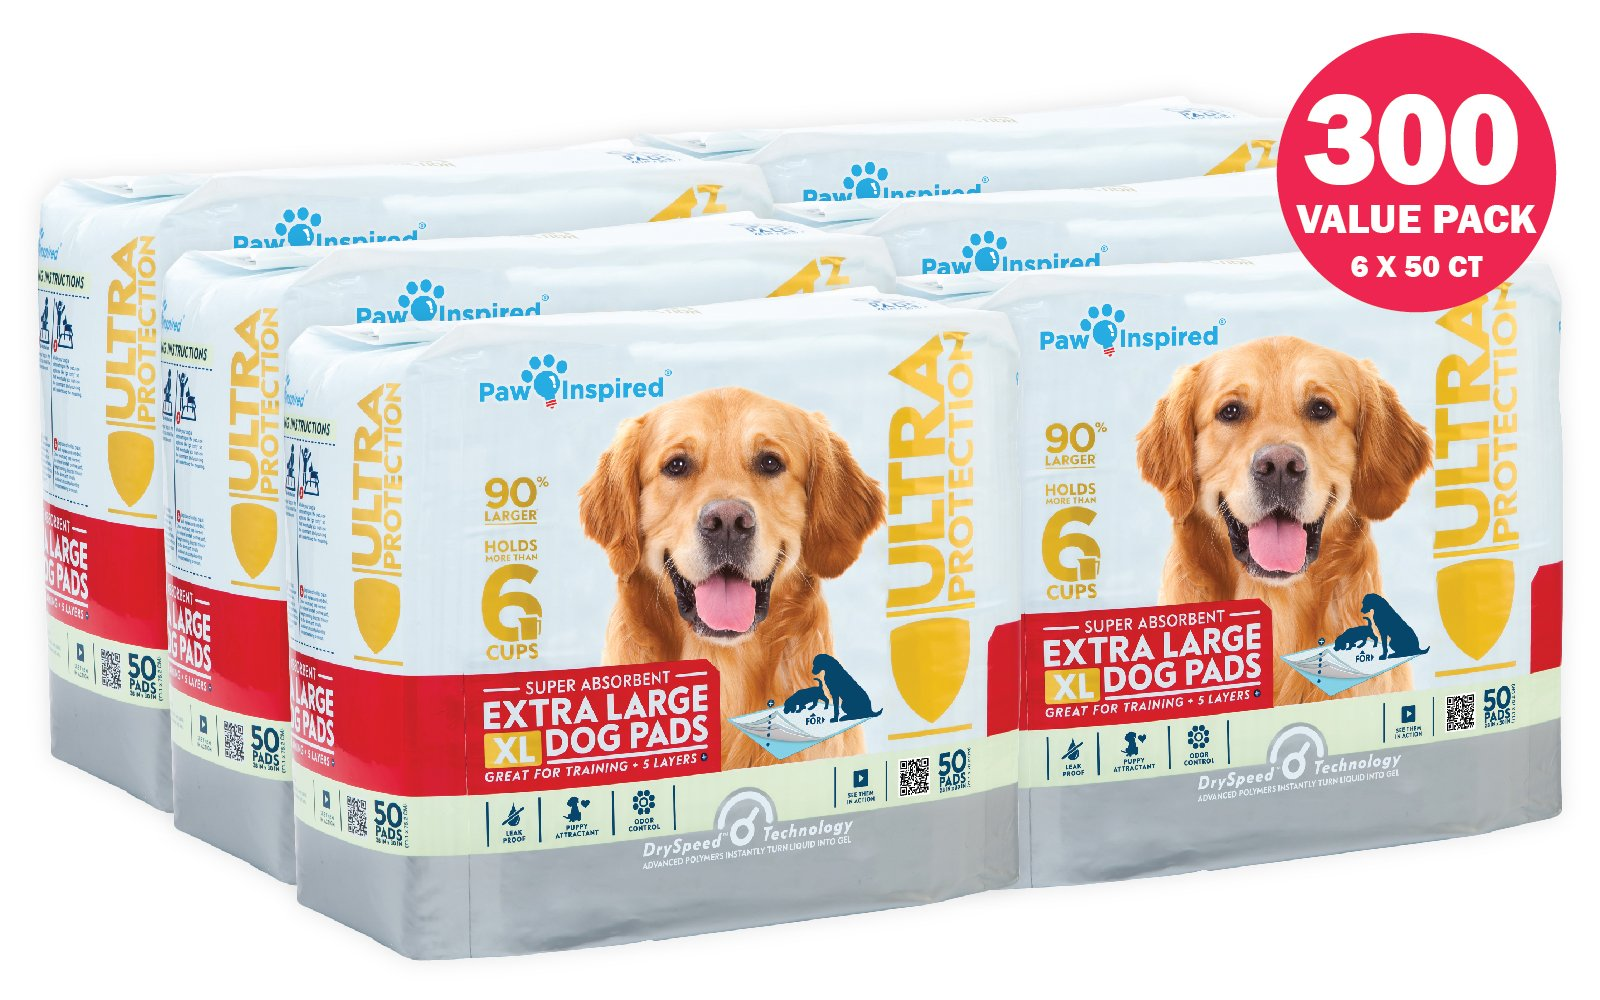 Paw Inspired Ultra Protection XL Extra Large Puppy Training Pads (Original XL Pads, 300 CT)